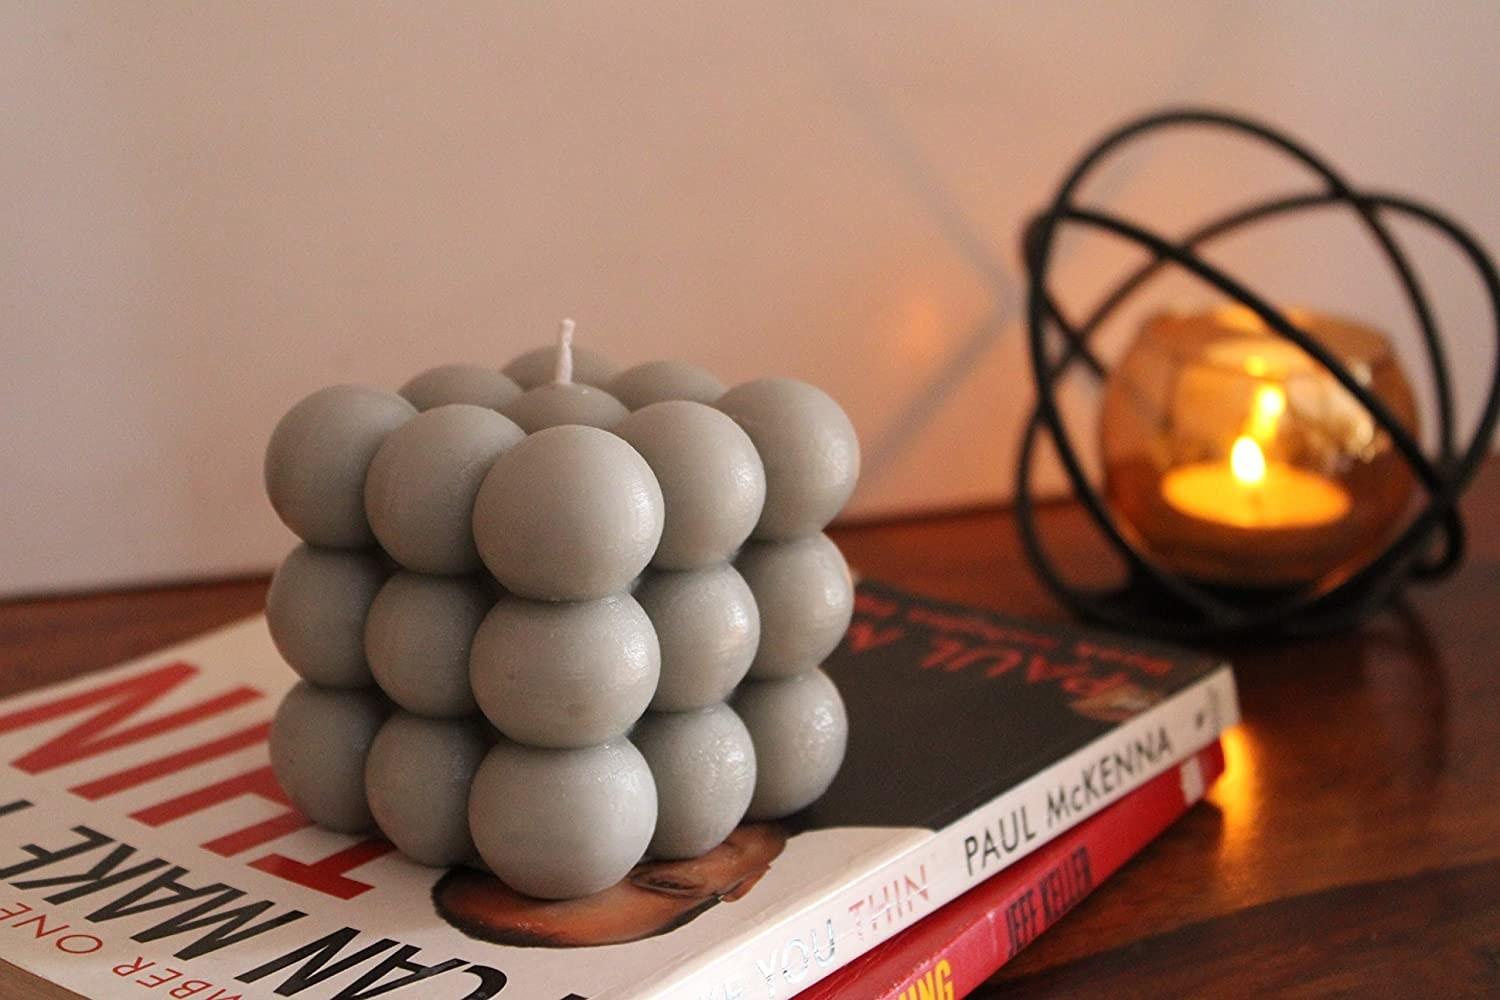 A grey cloud bubble shaped scented candle.